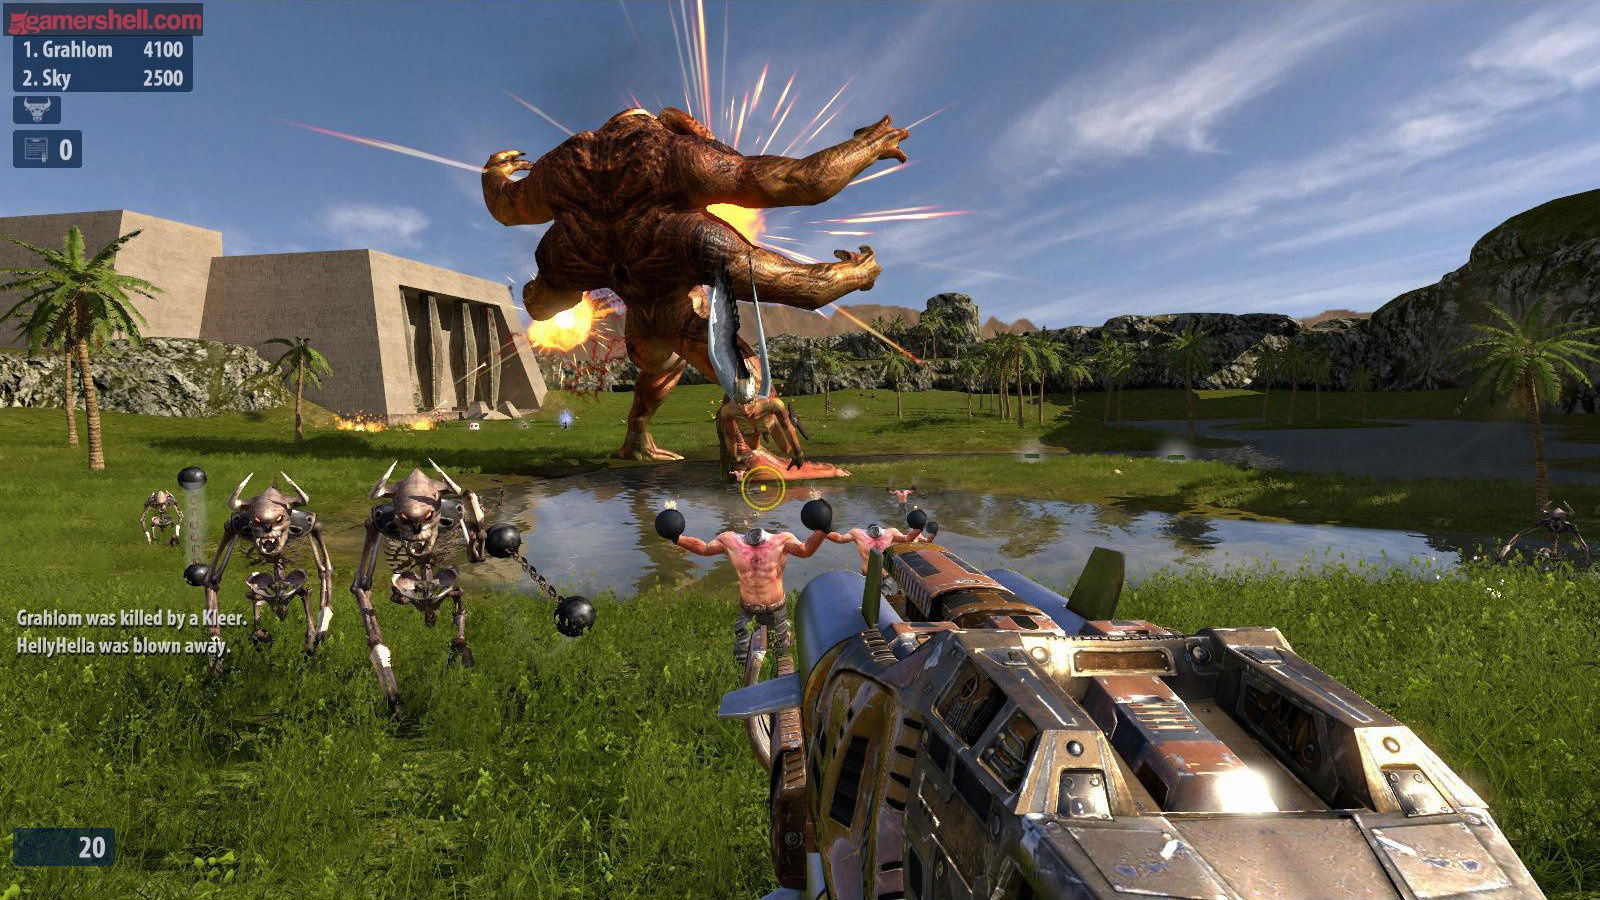 Serious Sam Double D Xxl Final Pc Walmart Crack Foxy Games Full Game Free Pc Download Play Download Serious Sam Double D Xxl Final Pc Walmart Crack Foxy Games Game By Dodsoniw